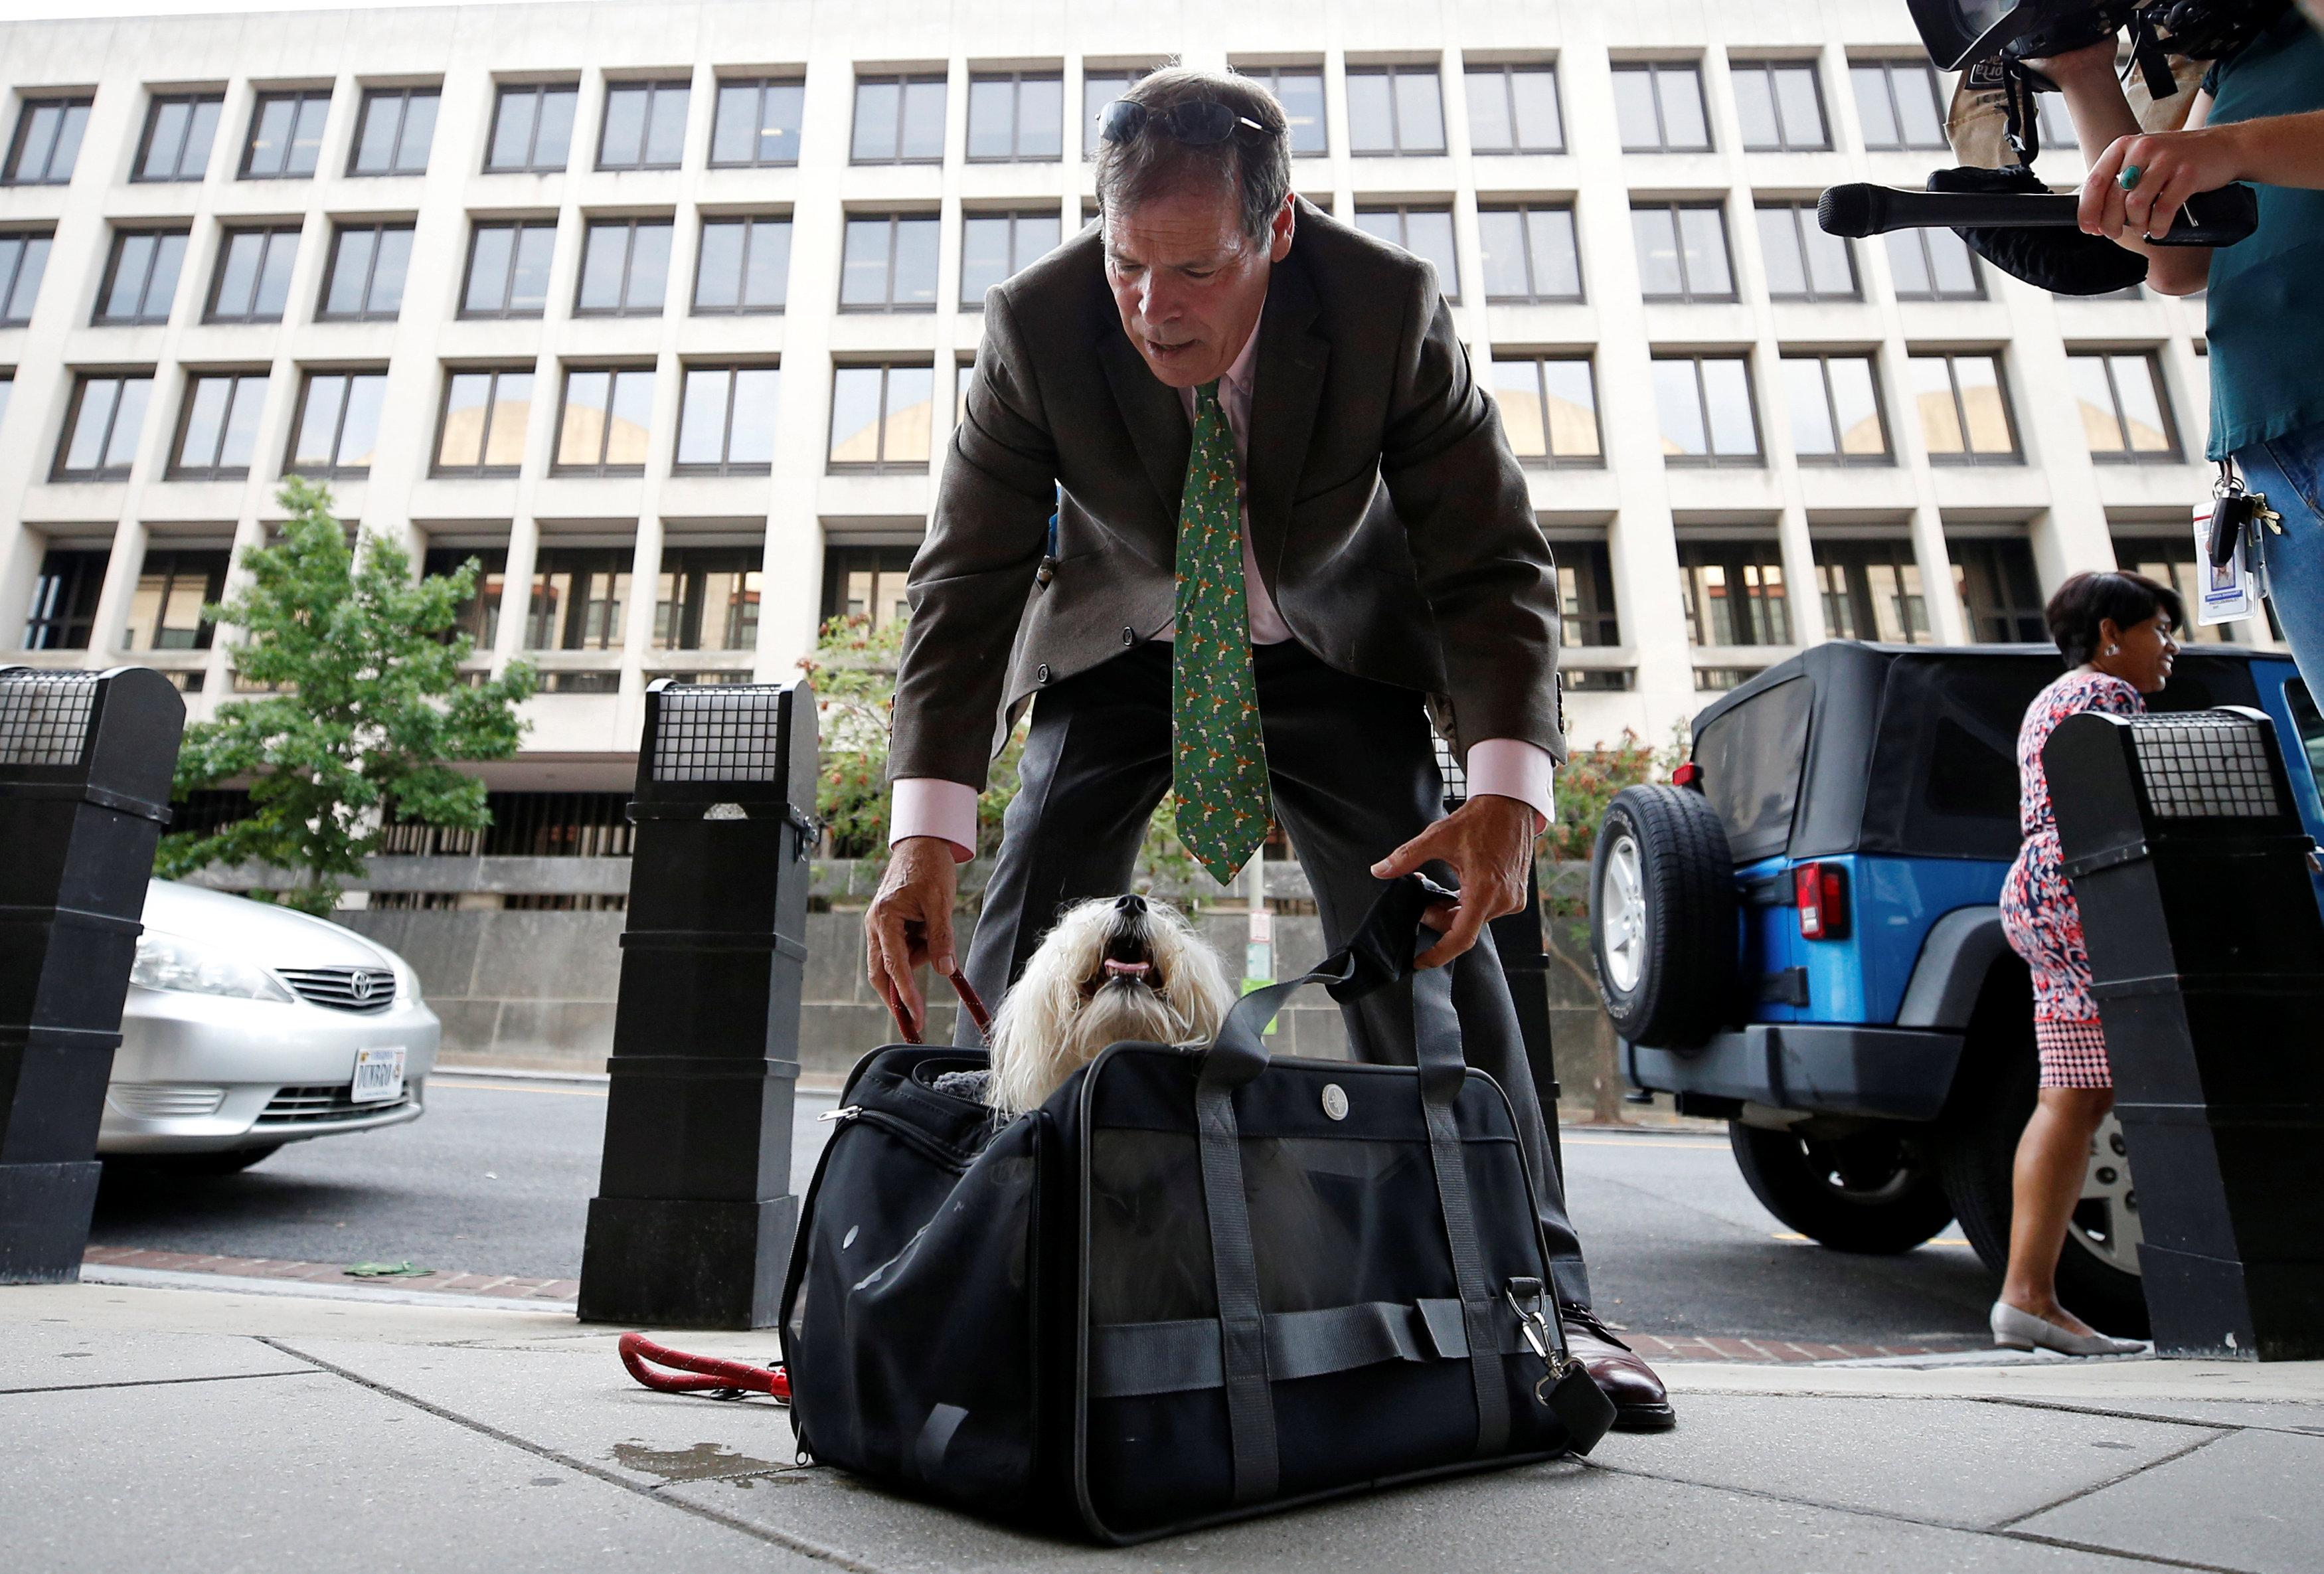 Randy Credico, an associate of former Trump campaign adviser Roger Stone, secures his dog Bianca as he arrives to testify before the grand jury convened by Special Counsel Robert Mueller at U.S. District Court in Washington, U.S., September 7, 2018. Chris Wattie